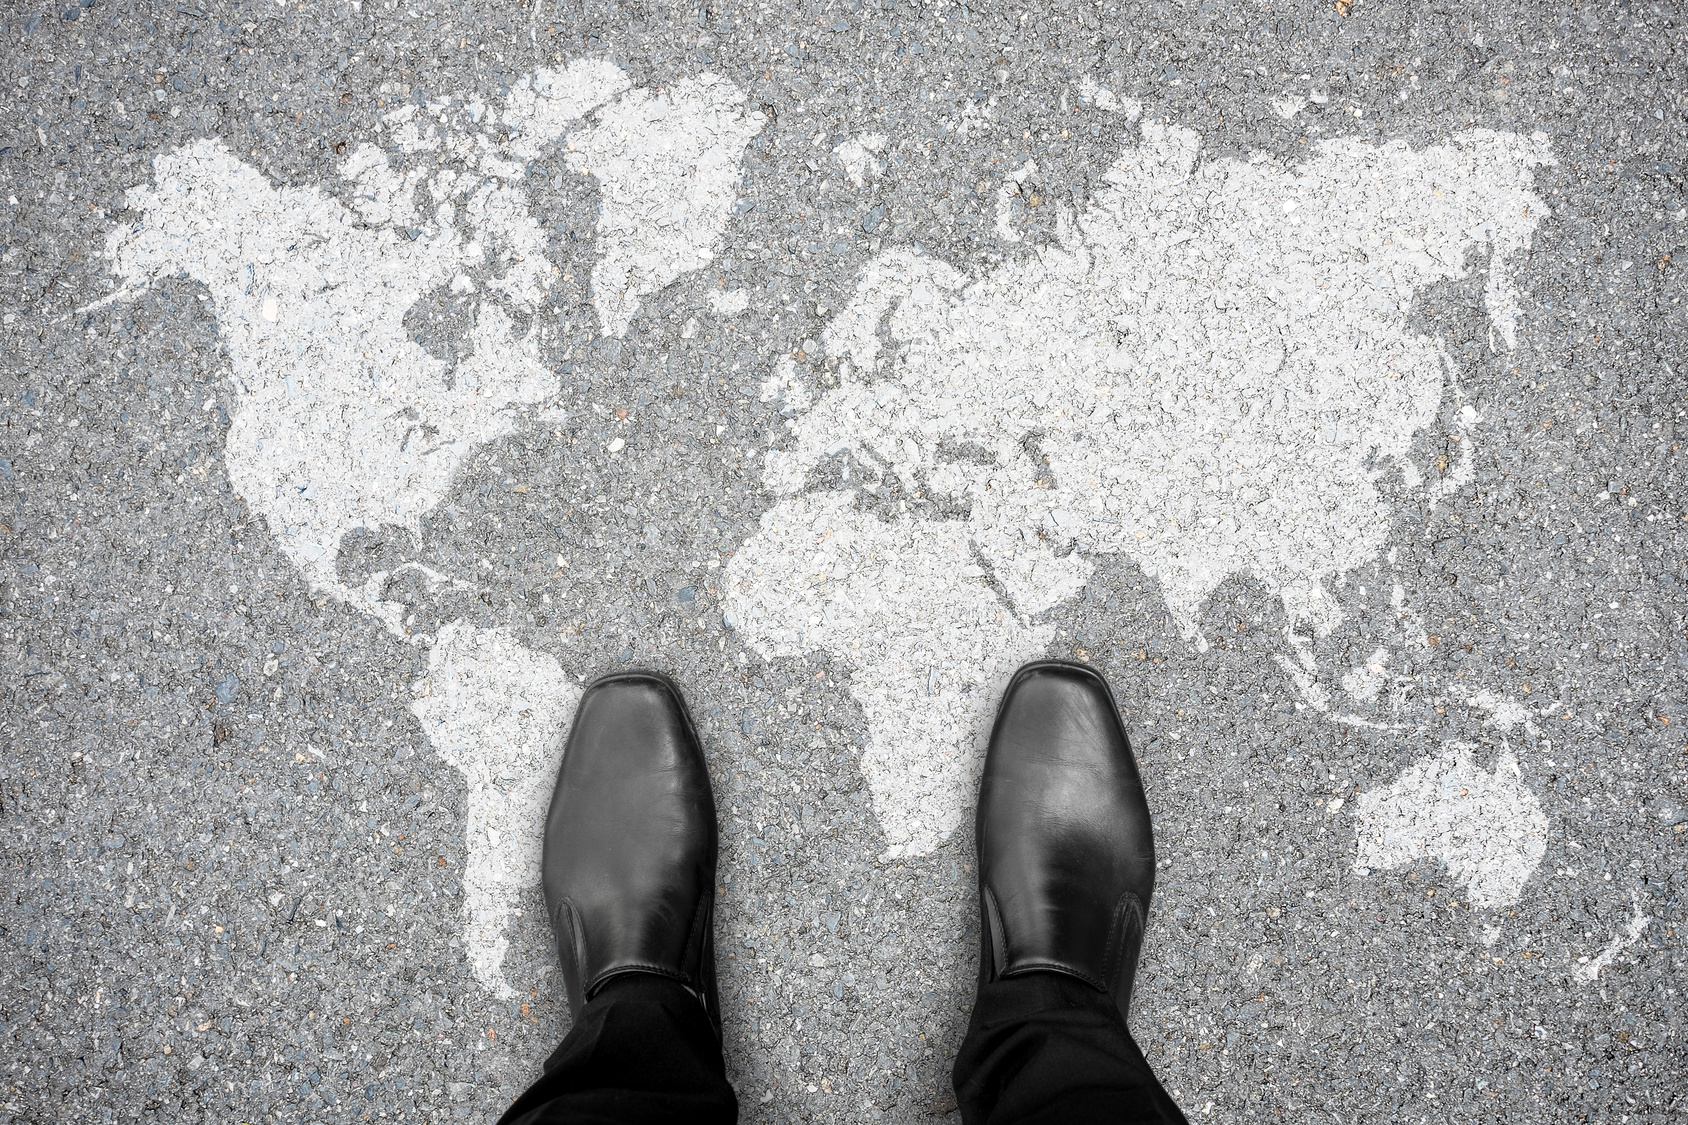 Man standing on globe painted on the ground